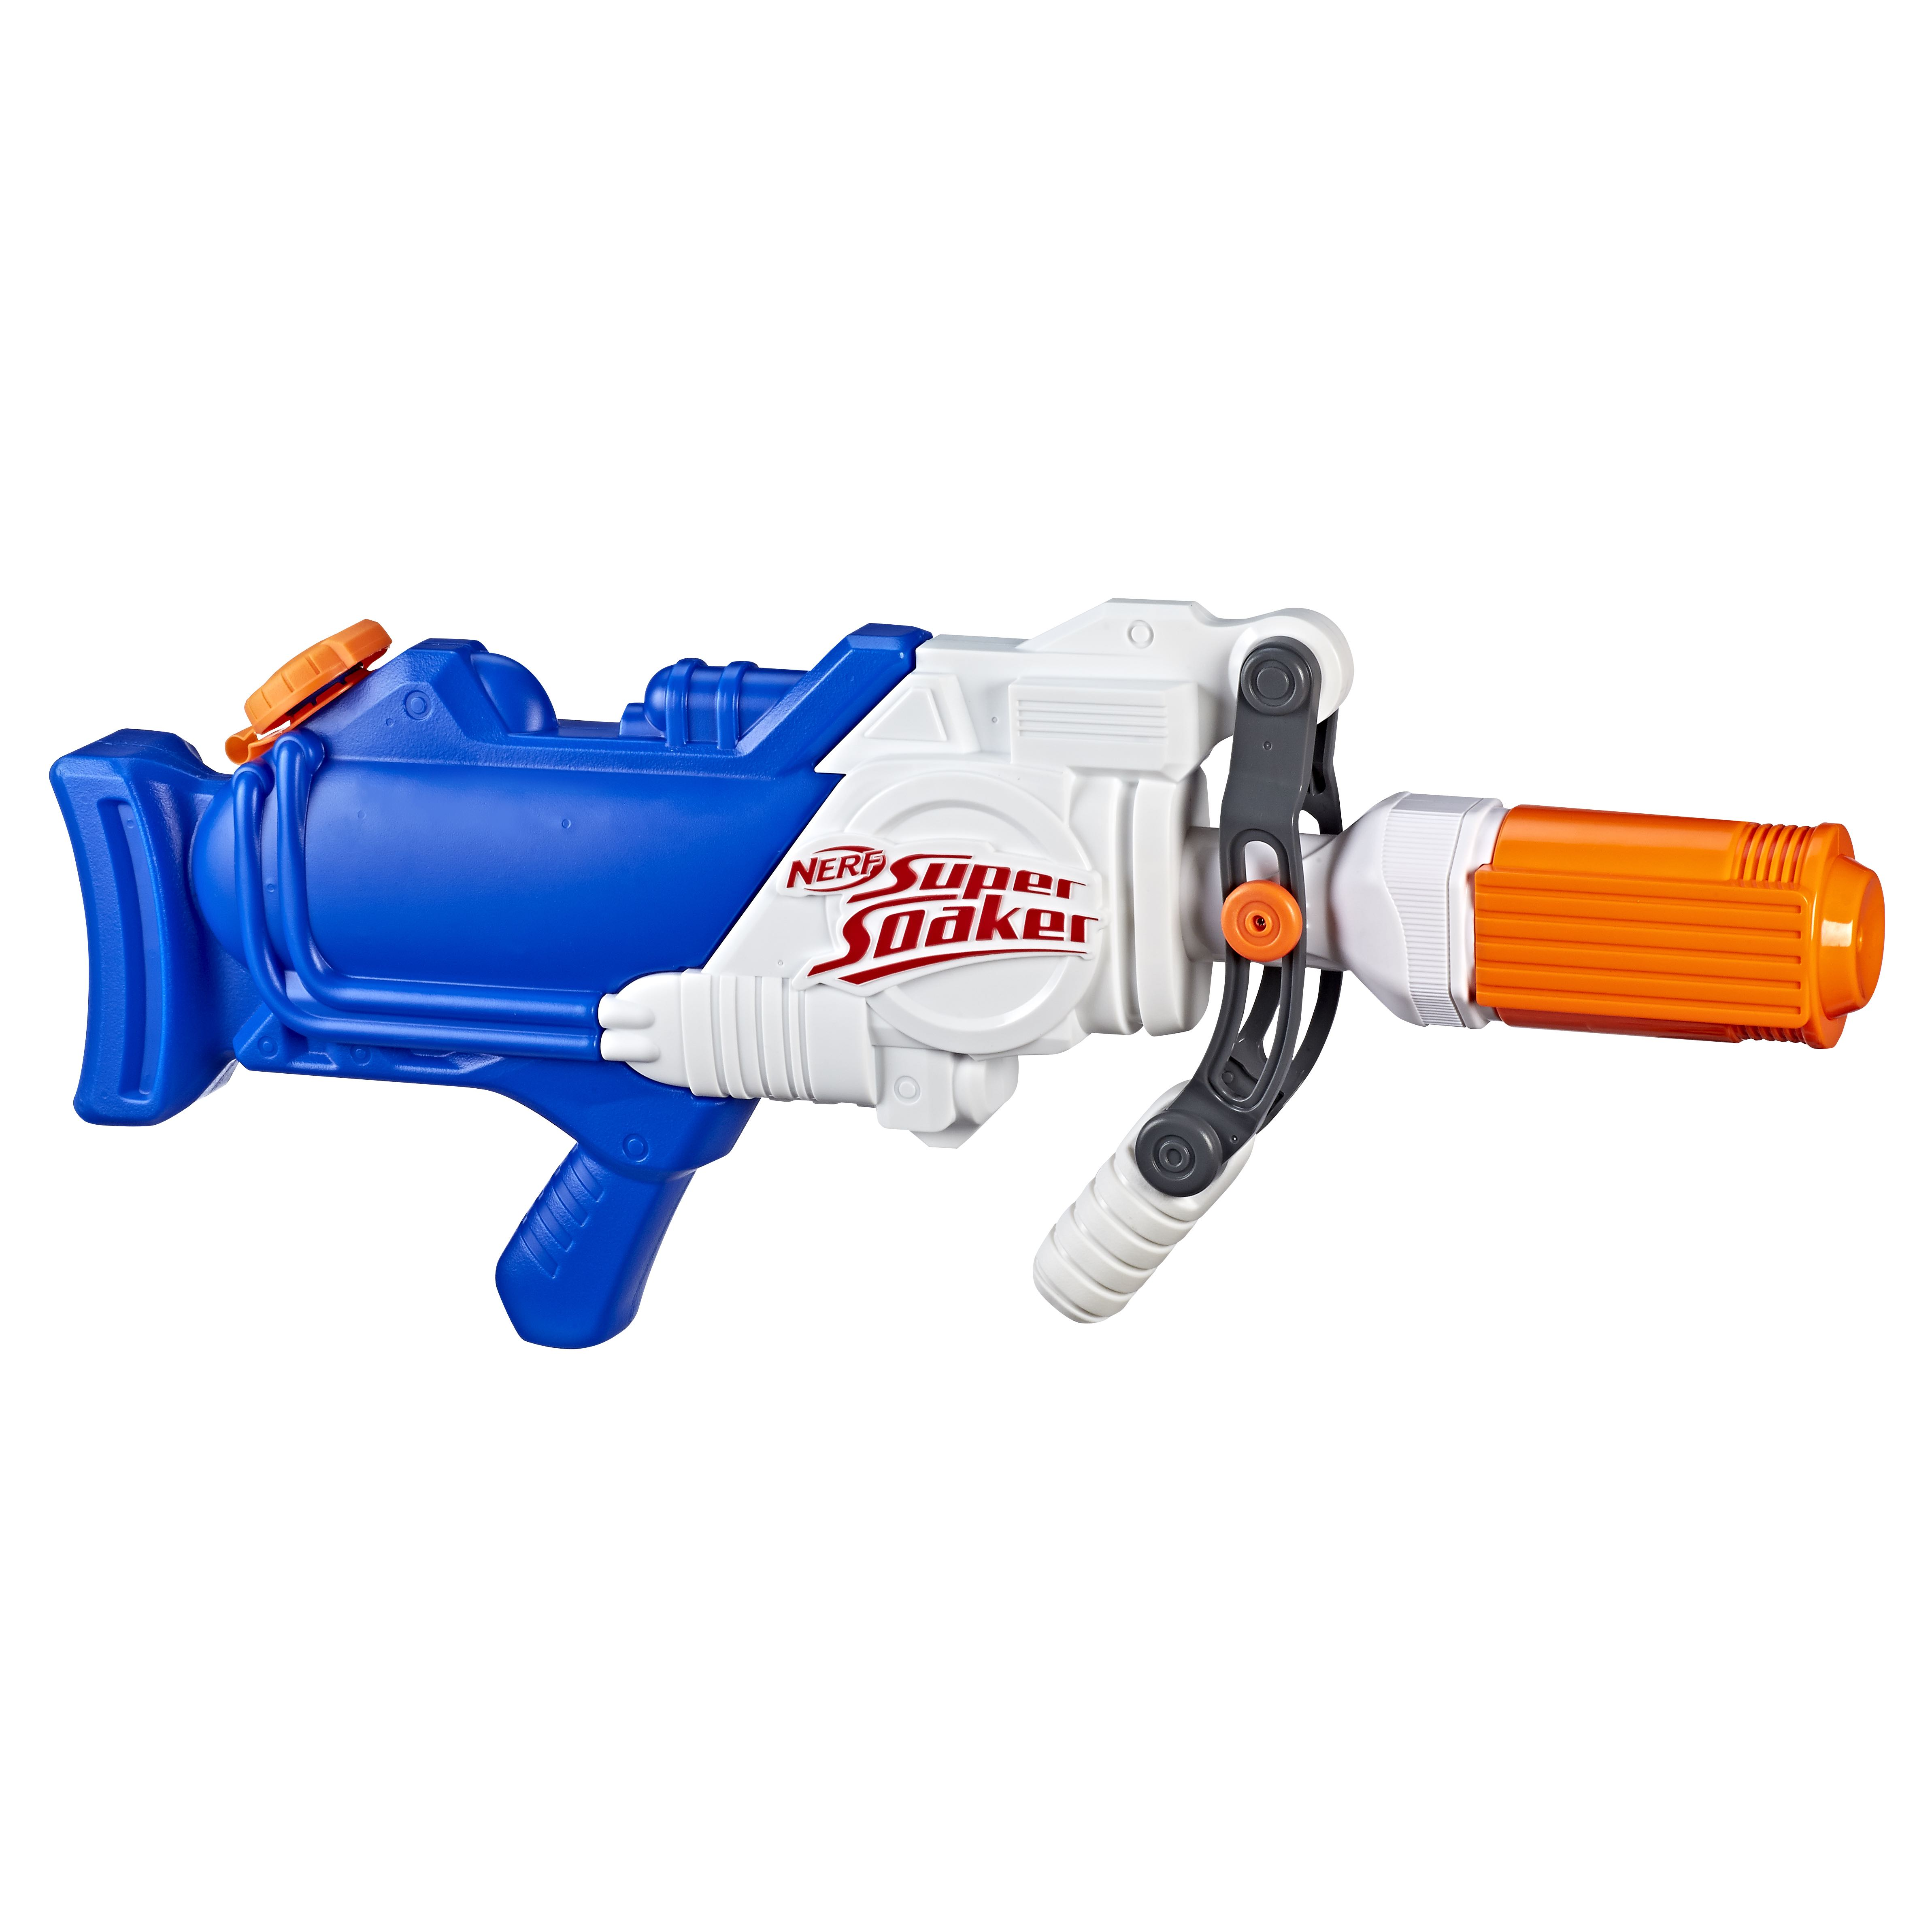 hydra nerf super soaker ohne verackung E2907AS00